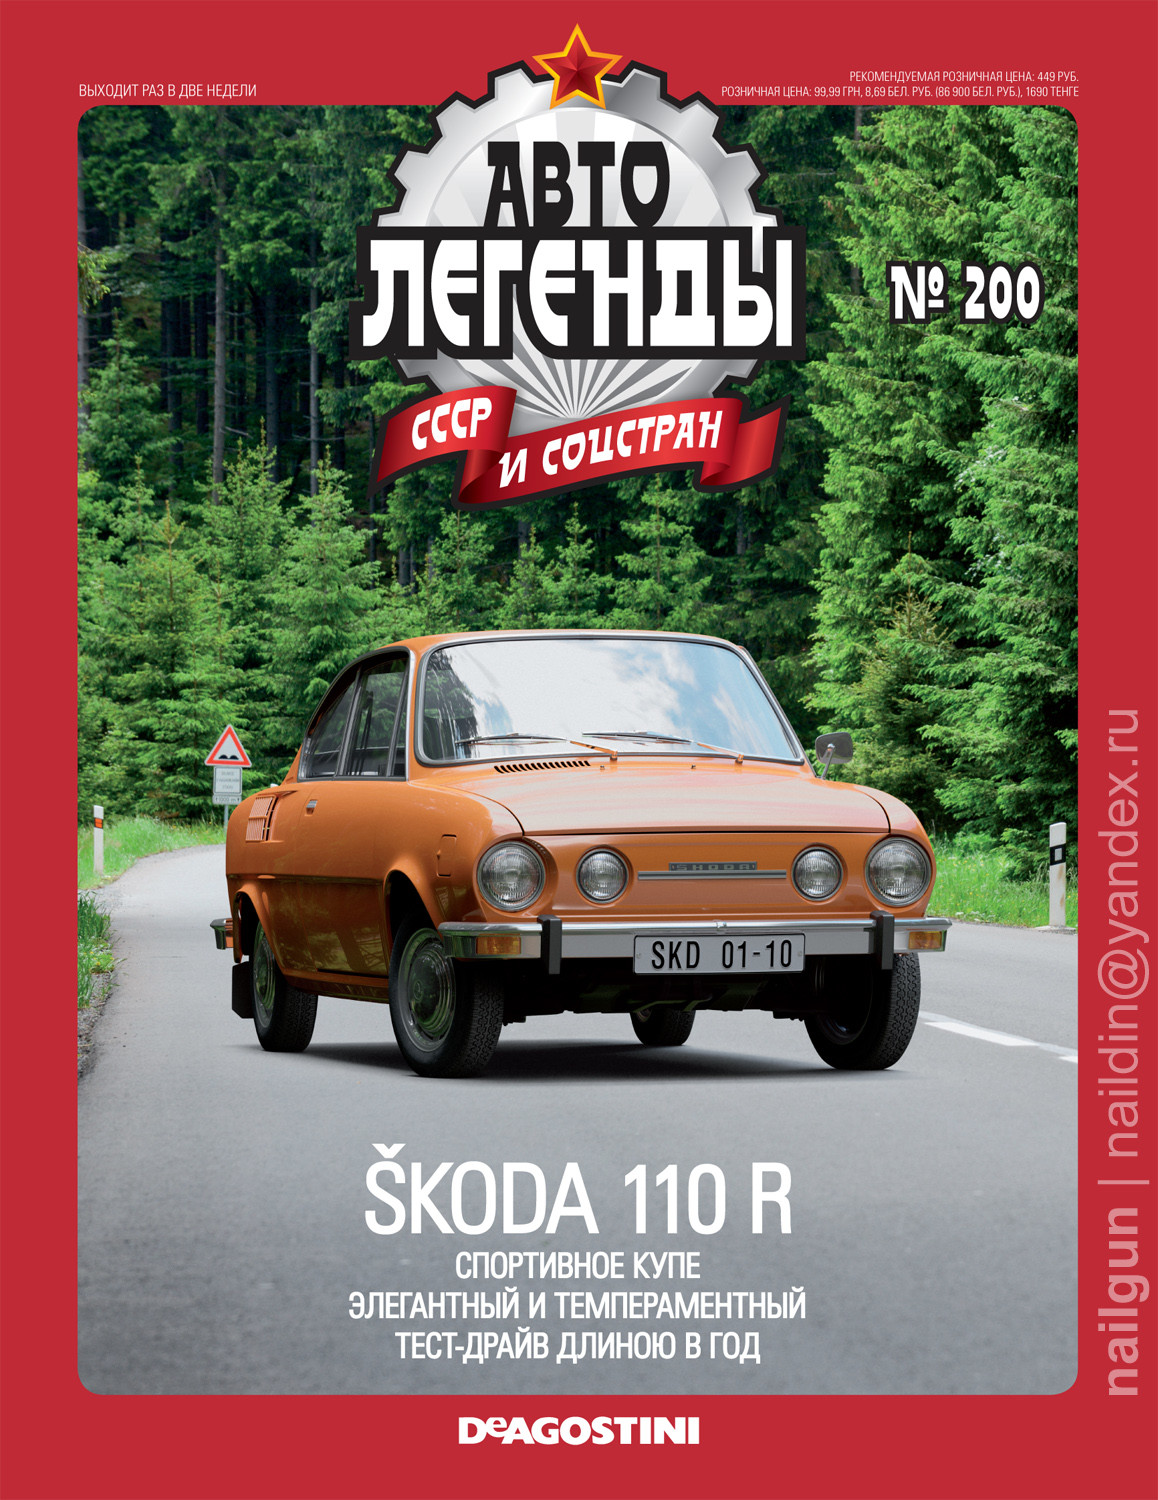 Nail khusnutdinov cars issue 200 hires 1